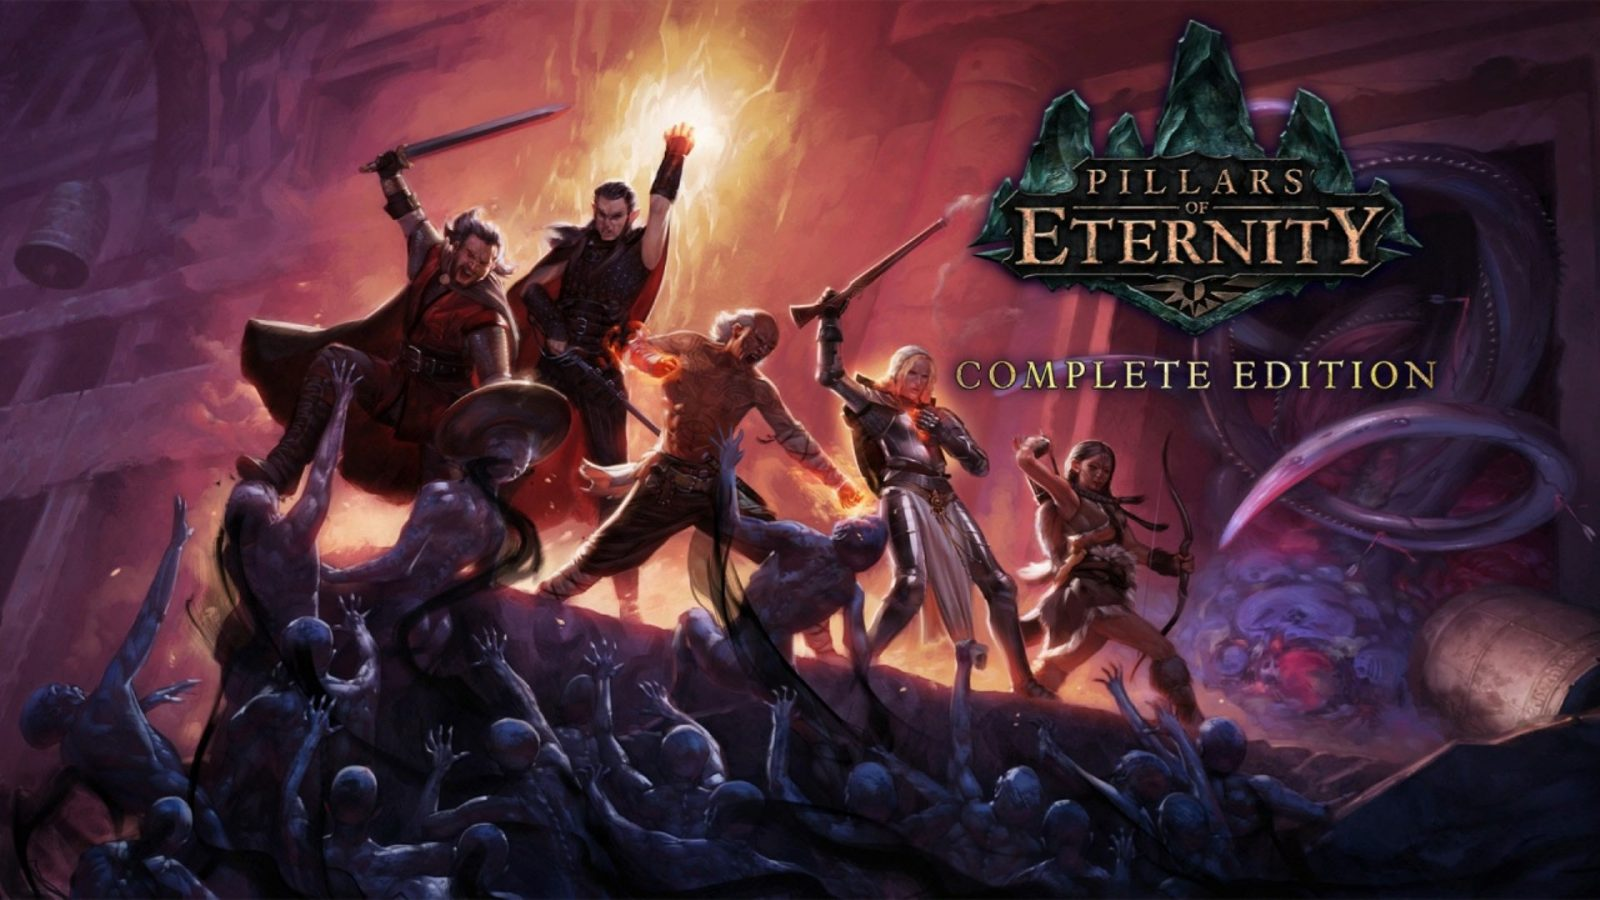 Pillars of Eternity is Coming to the Nintendo Switch This August